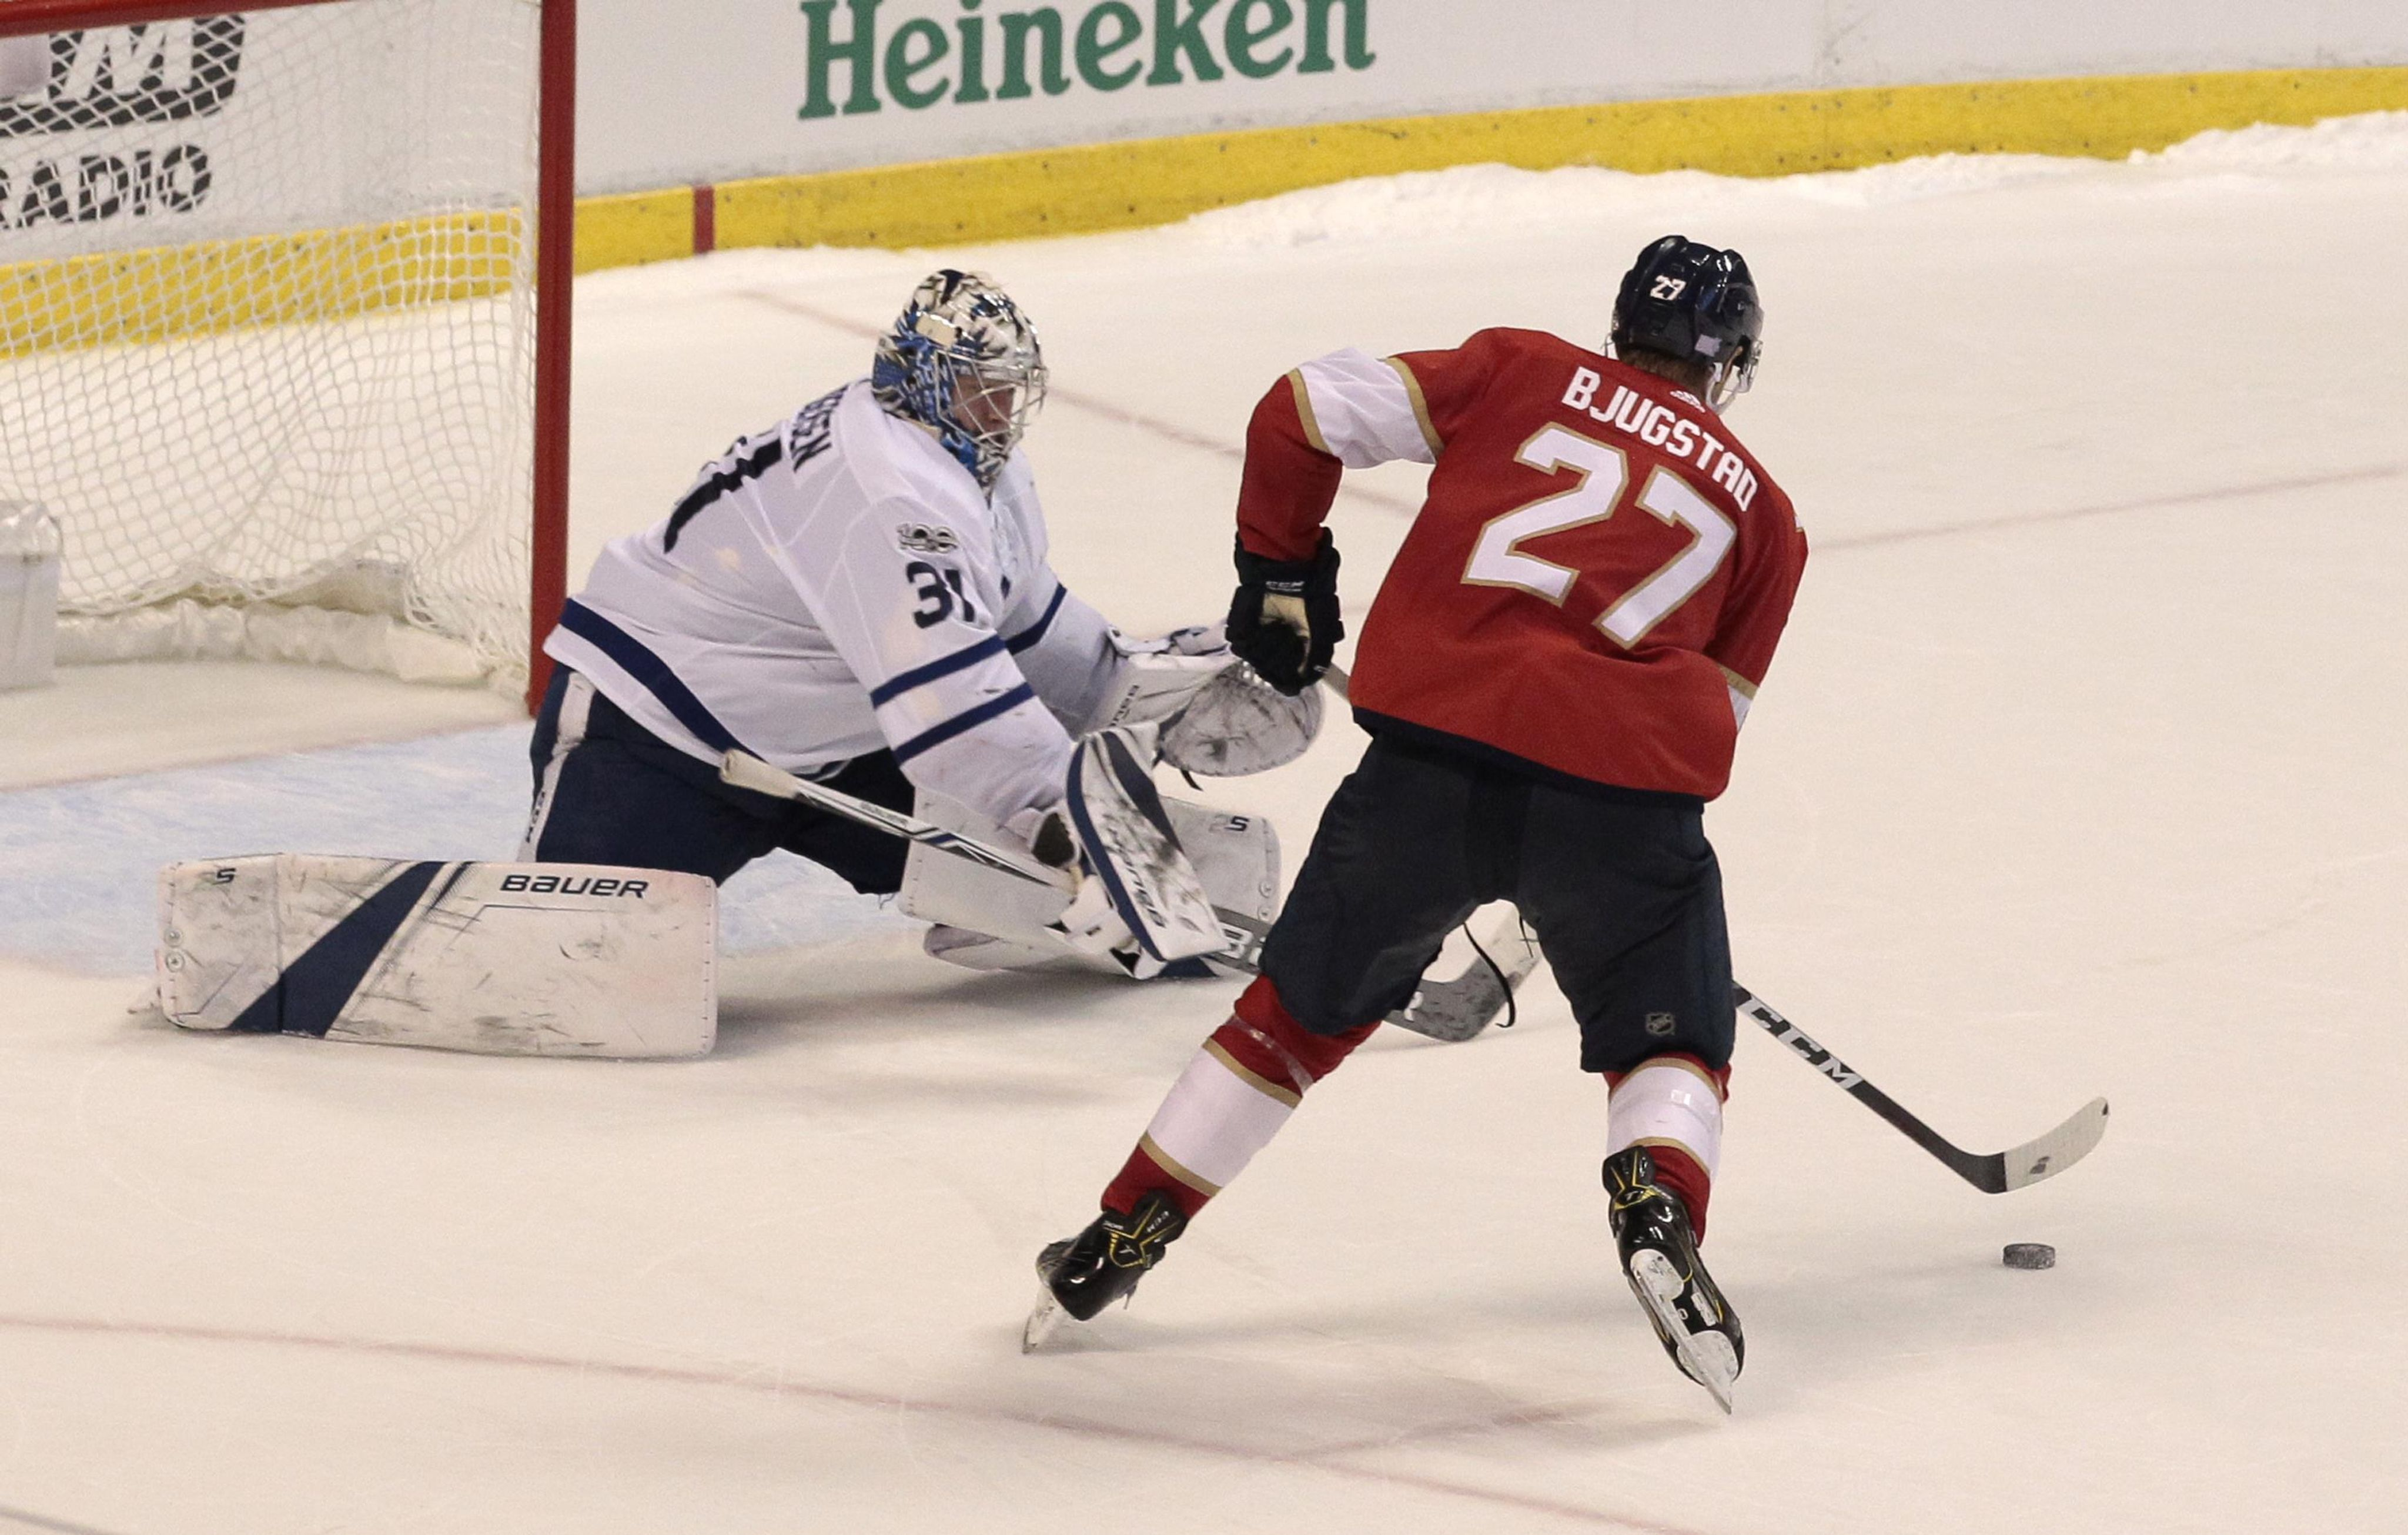 Maple_leafs_panthers_hockey_17749_s4096x2611